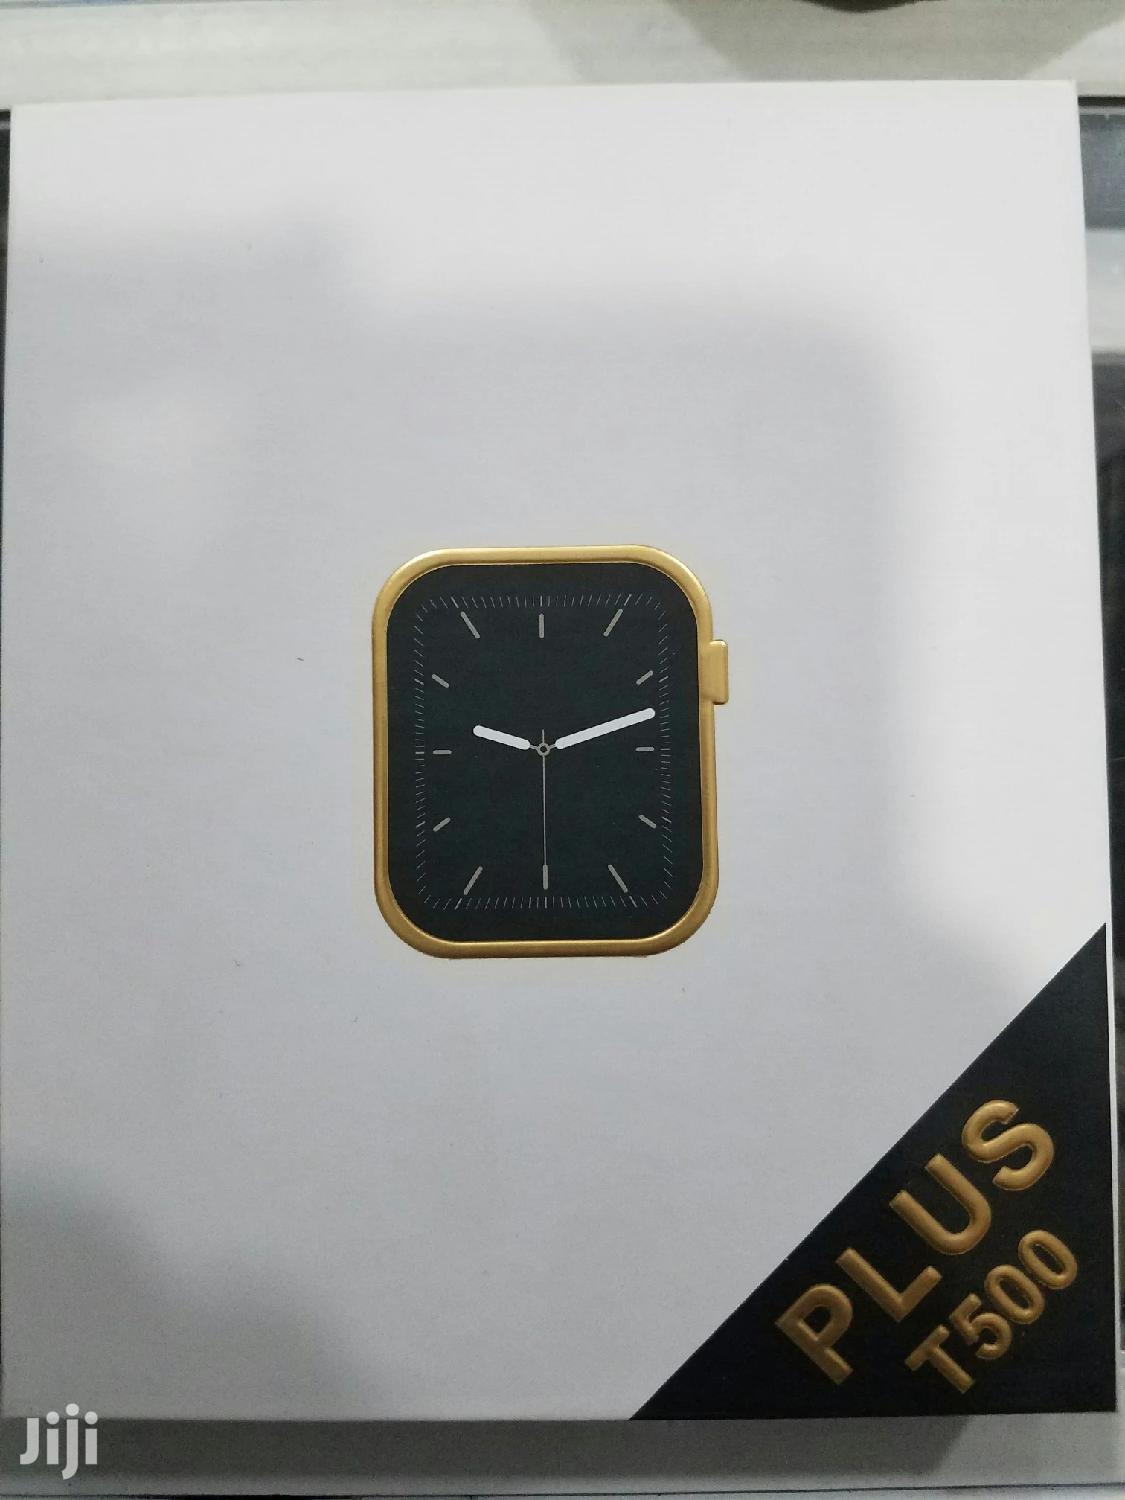 T500 Smart Watch | Smart Watches & Trackers for sale in Accra Metropolitan, Greater Accra, Ghana